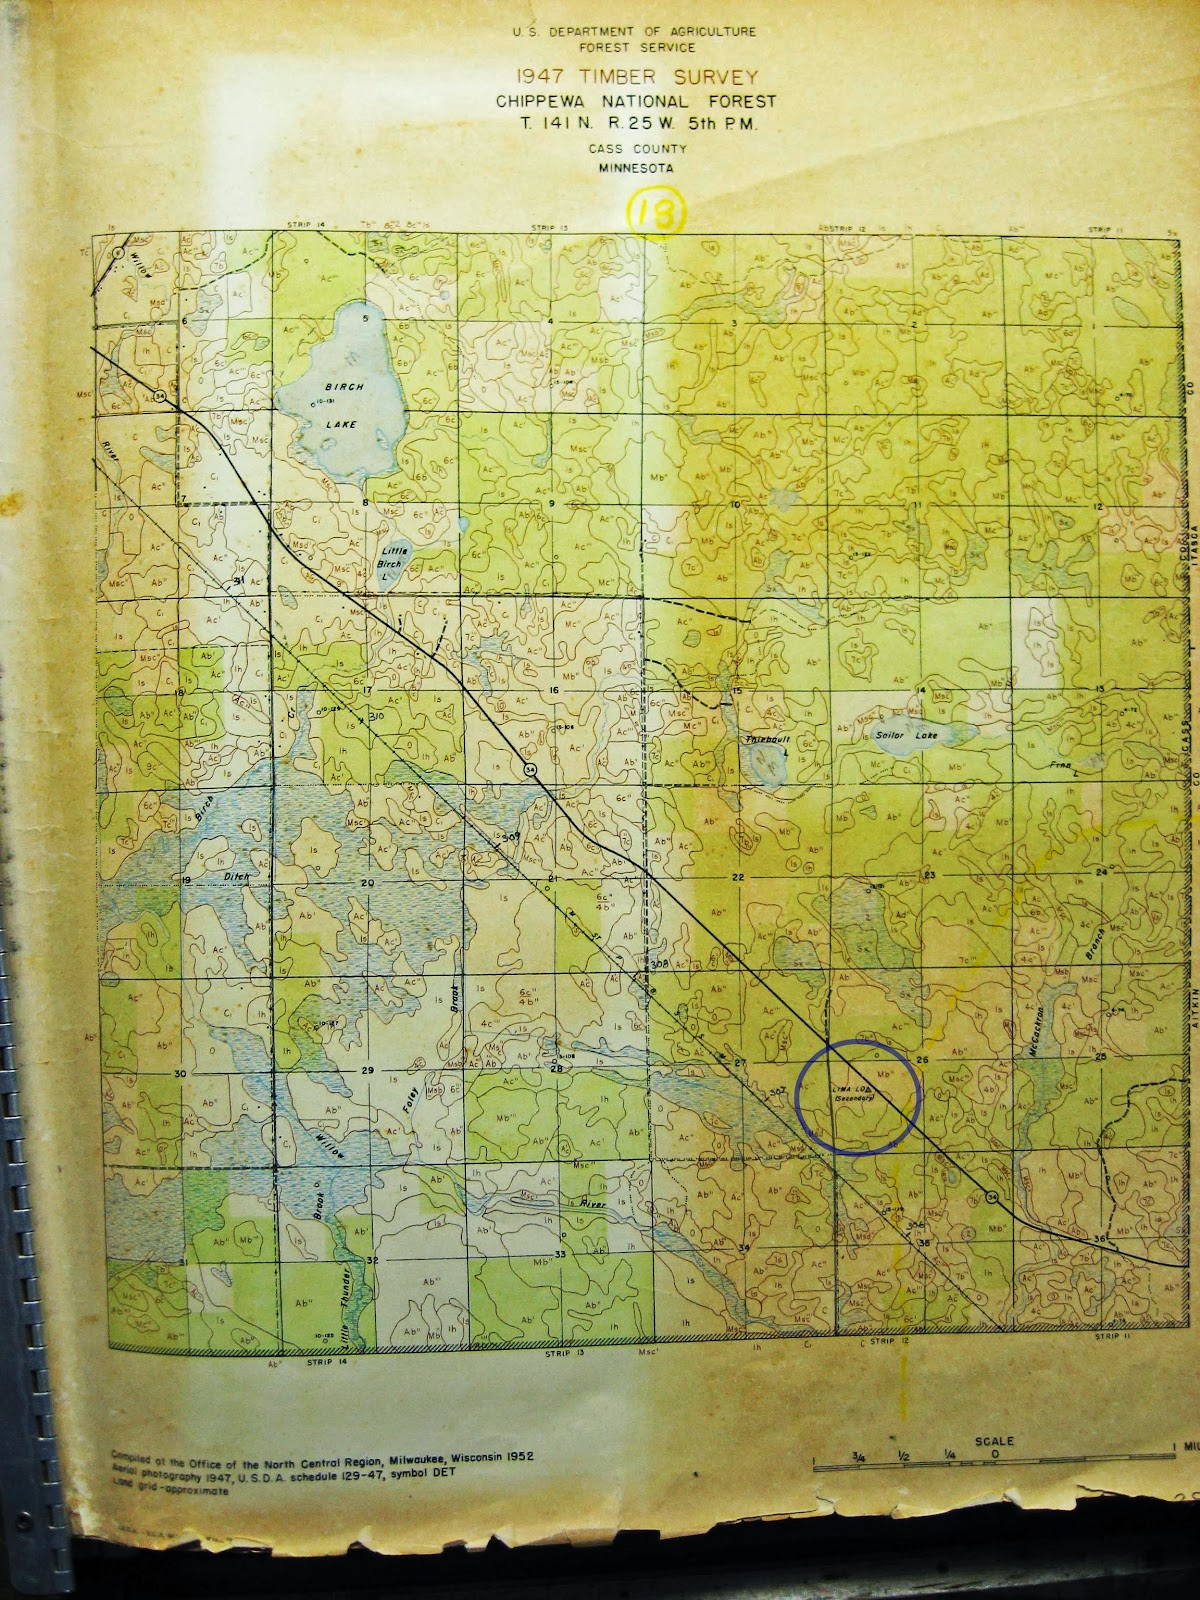 1947 timber survey map usfs